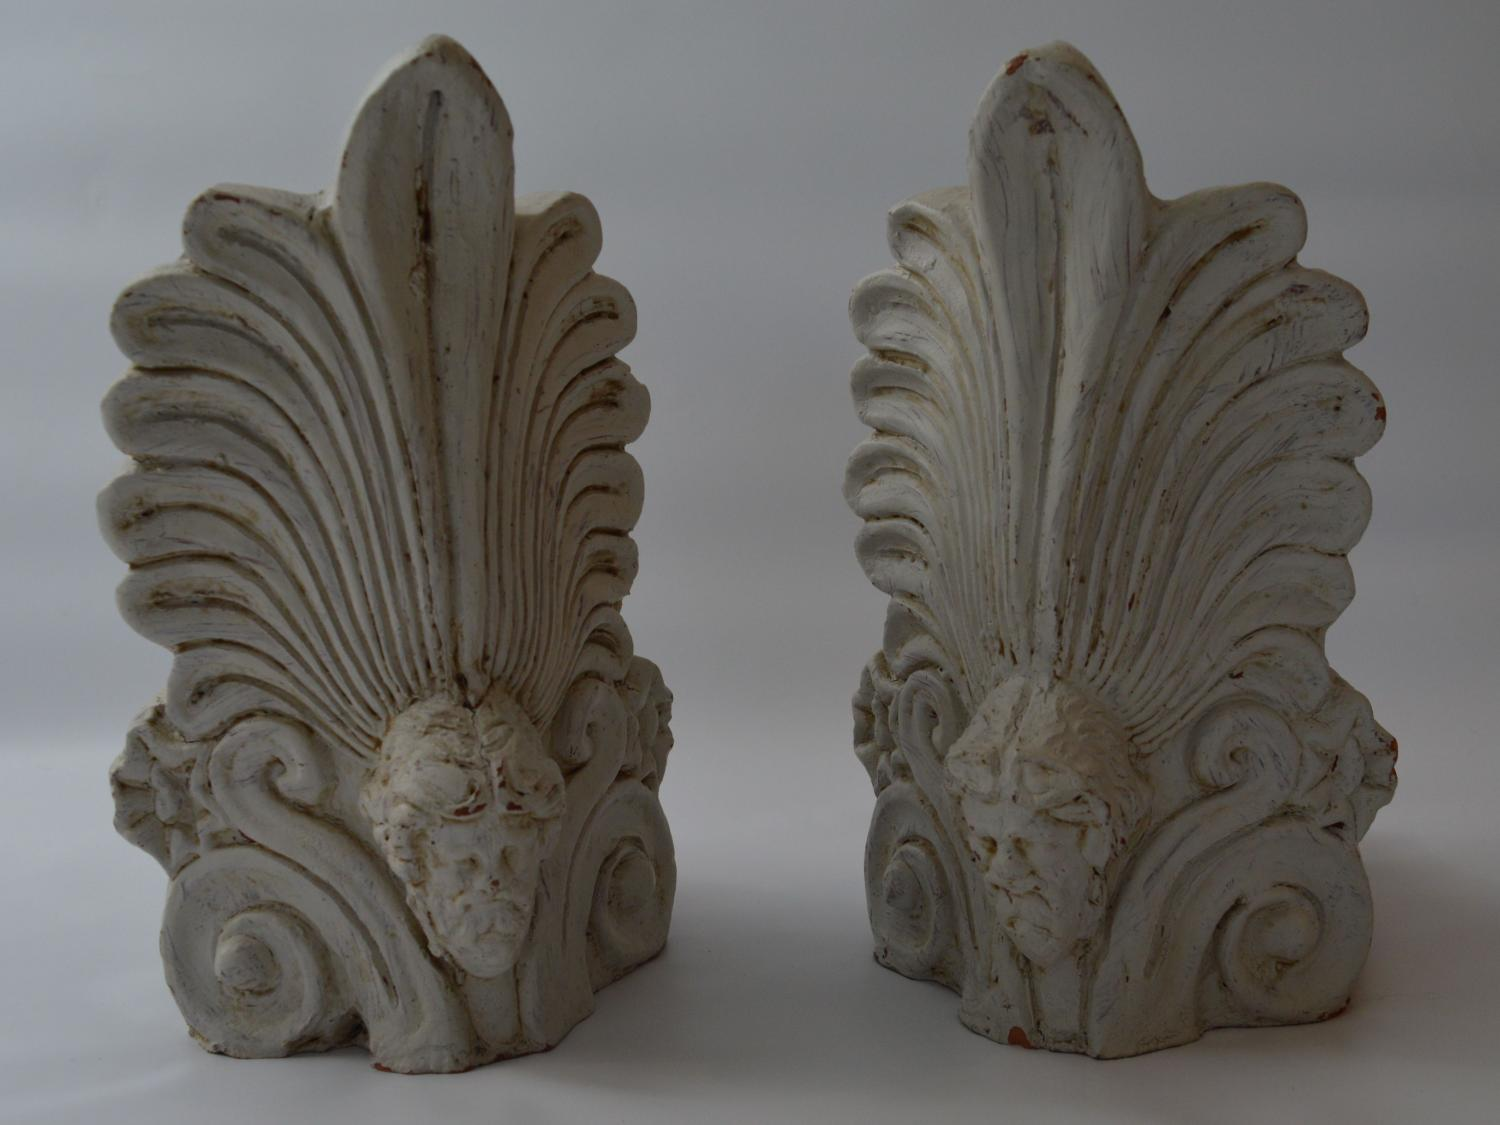 A Pair Of Decorative Terracotta Finials